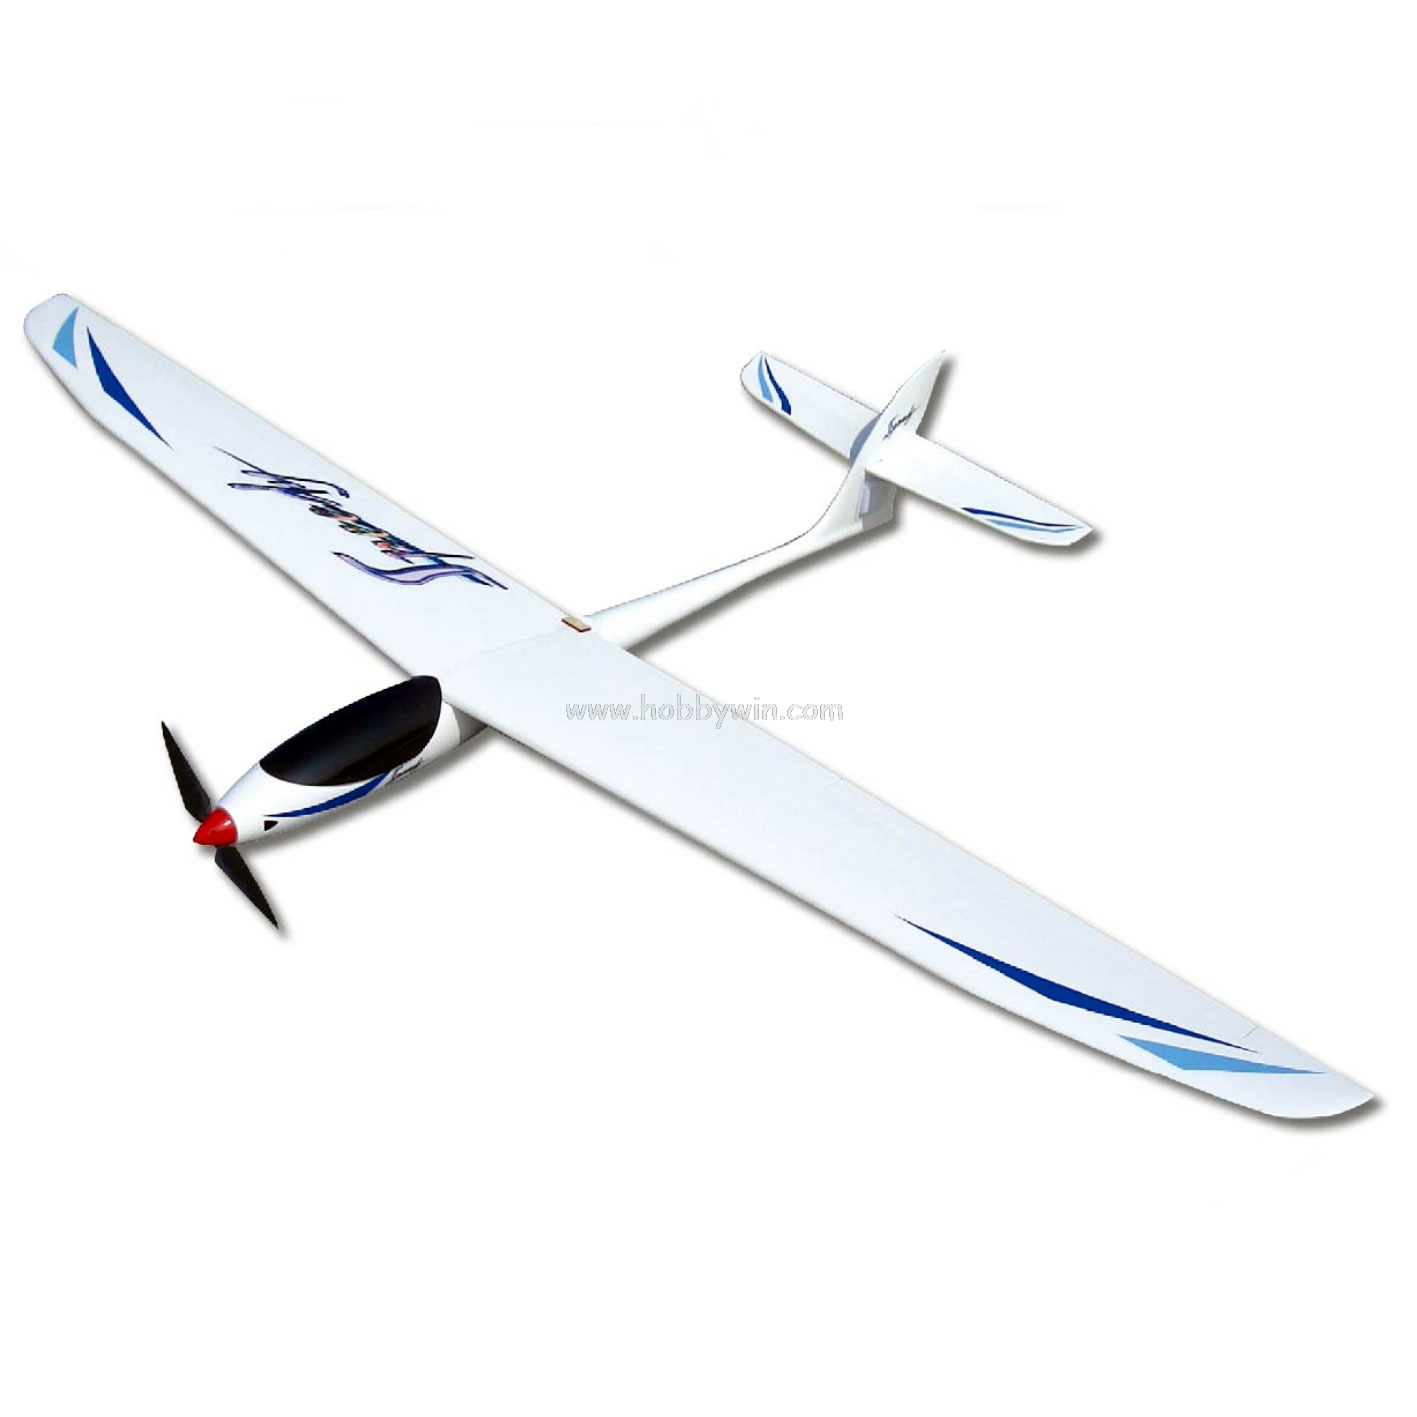 Speedy Electric Glider Mm Pnp With Motor Amp Propeller